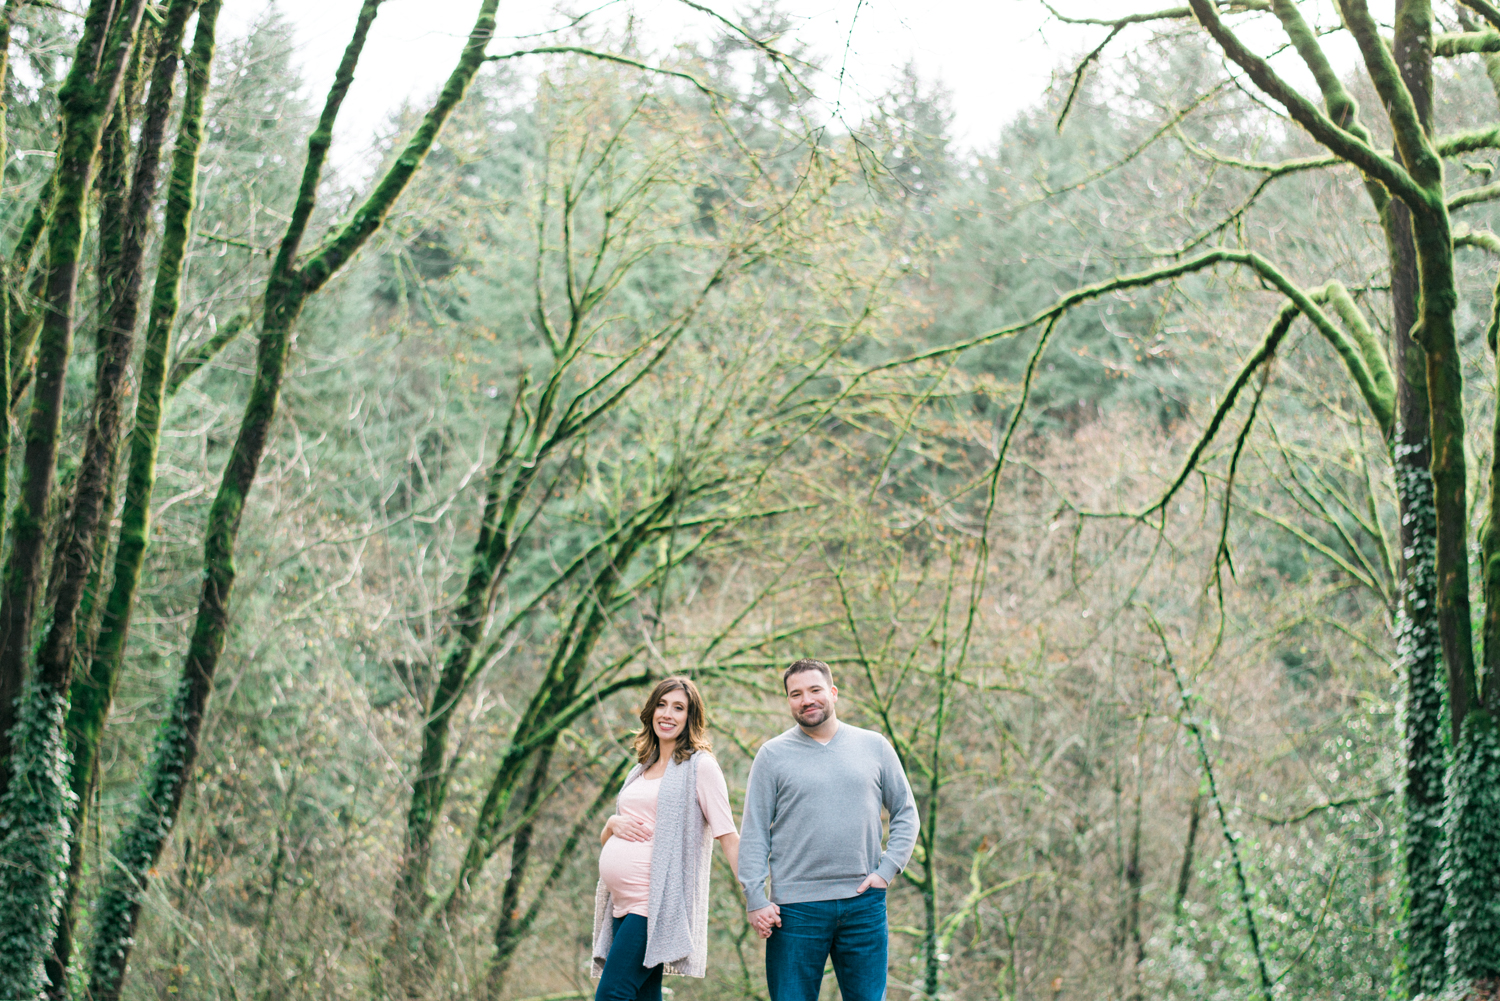 portland-maternity-photographer-washington-park-forest-woodland-shelley-marie-photo-3